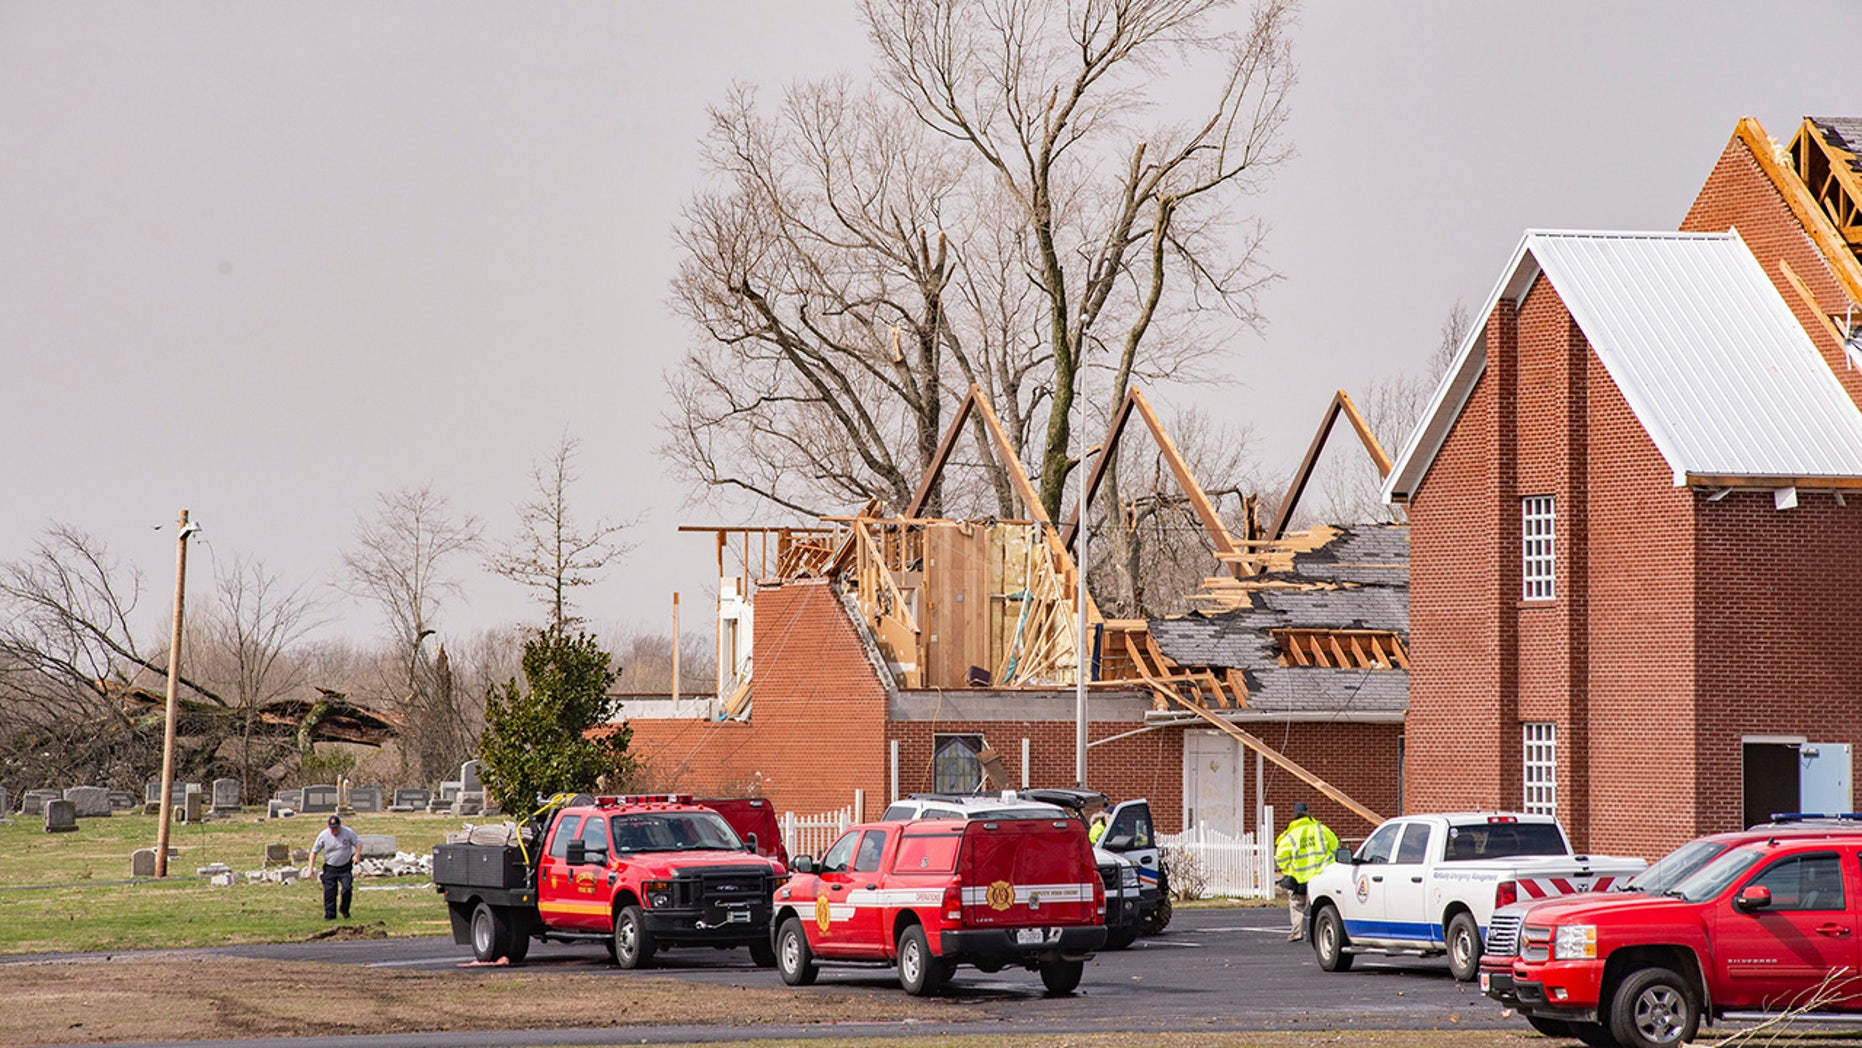 This Thursday, March 14, 2019 photo shows damage to Mount Zion Church in West Paducah, Ky. The twister left a path in western Kentucky from Lovelaceville through the West Paducah area, according to Keith Todd, a spokesman for the Kentucky Transportation Cabinet. (Dave Thompson/The Paducah Sun via AP)